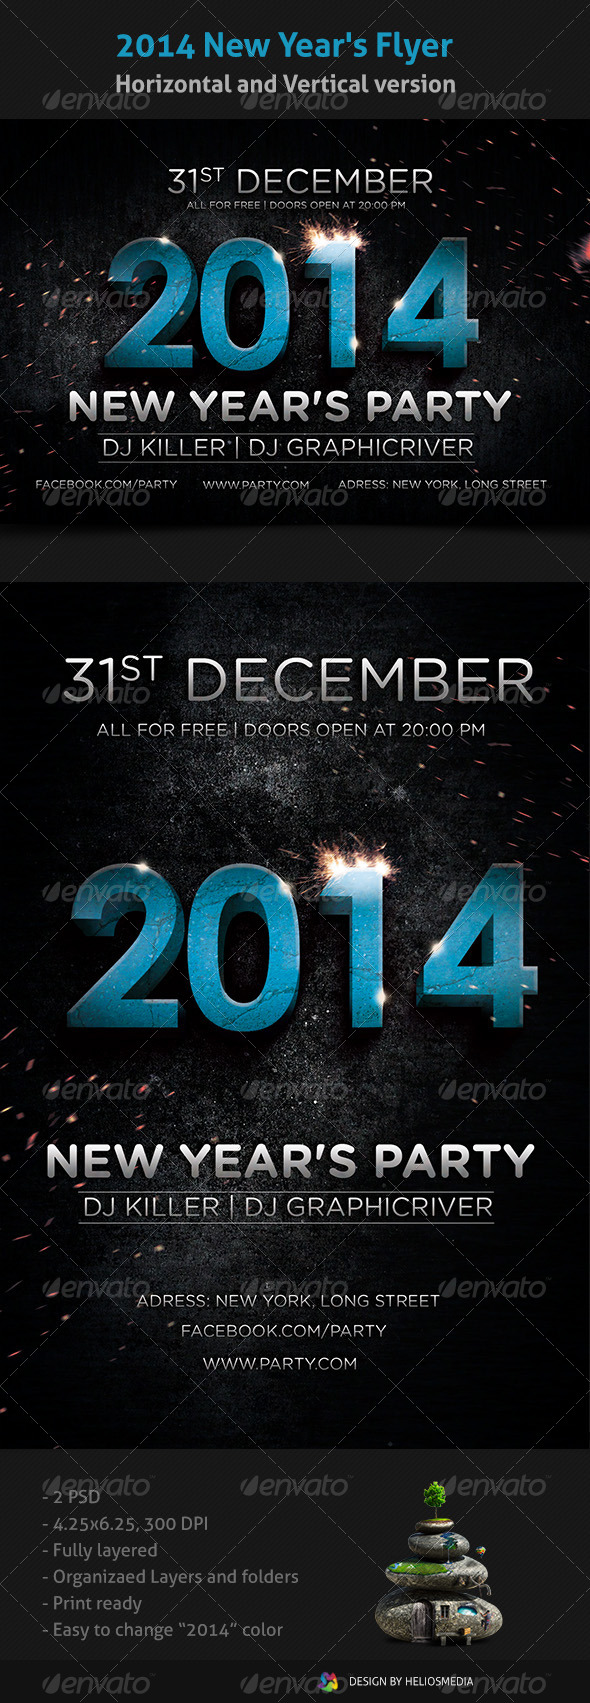 GraphicRiver 2014 New Year's Flyer 6277830